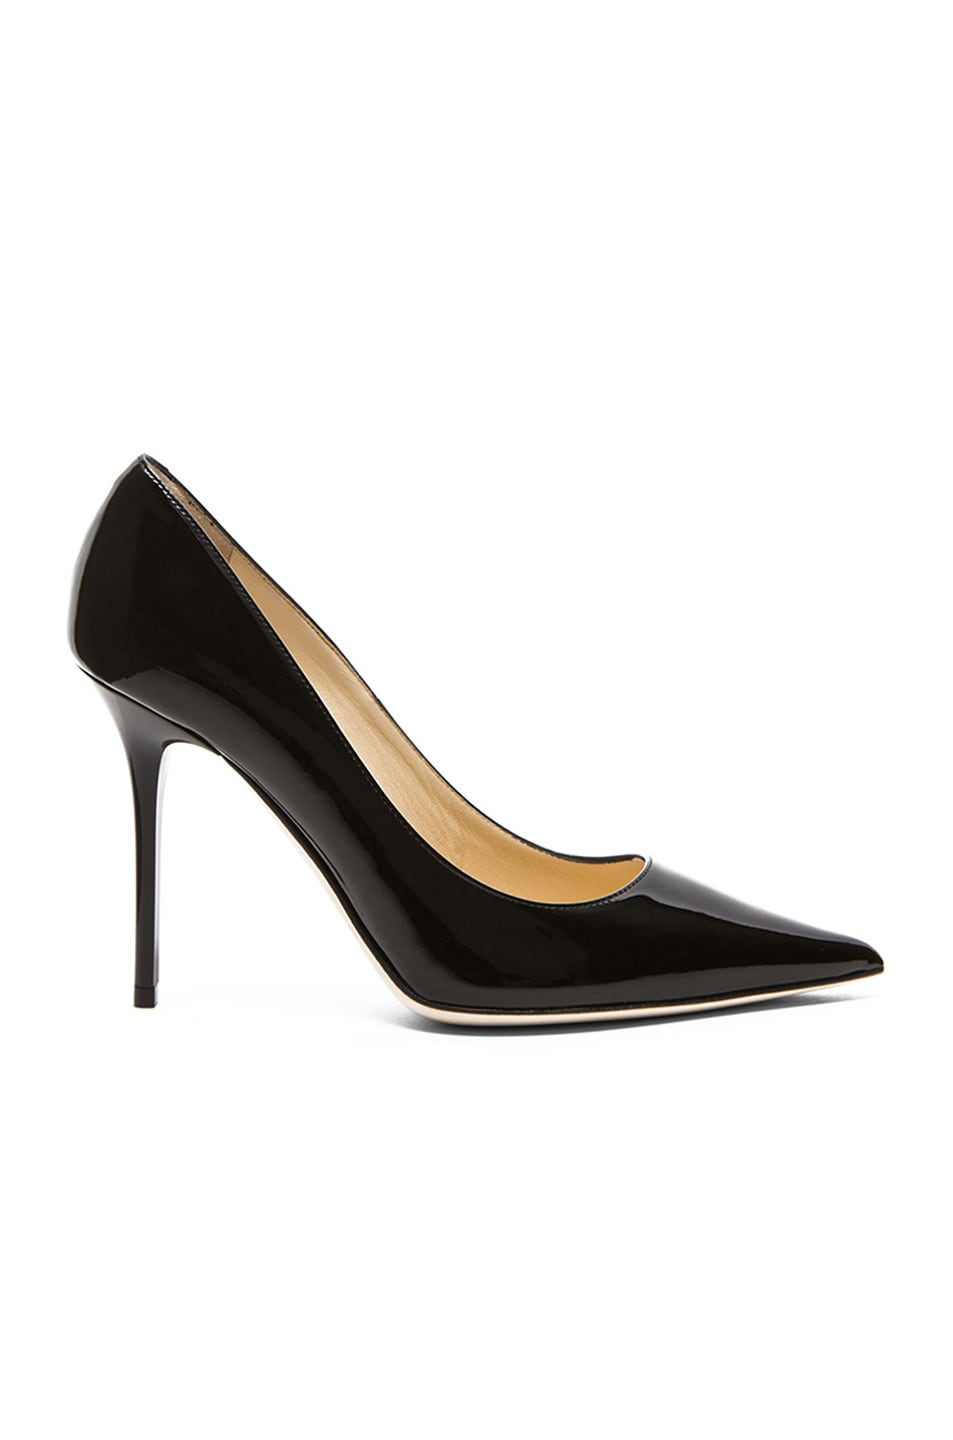 Image 1 of Jimmy Choo Abel Pointed Patent Leather Pumps in Black Patent